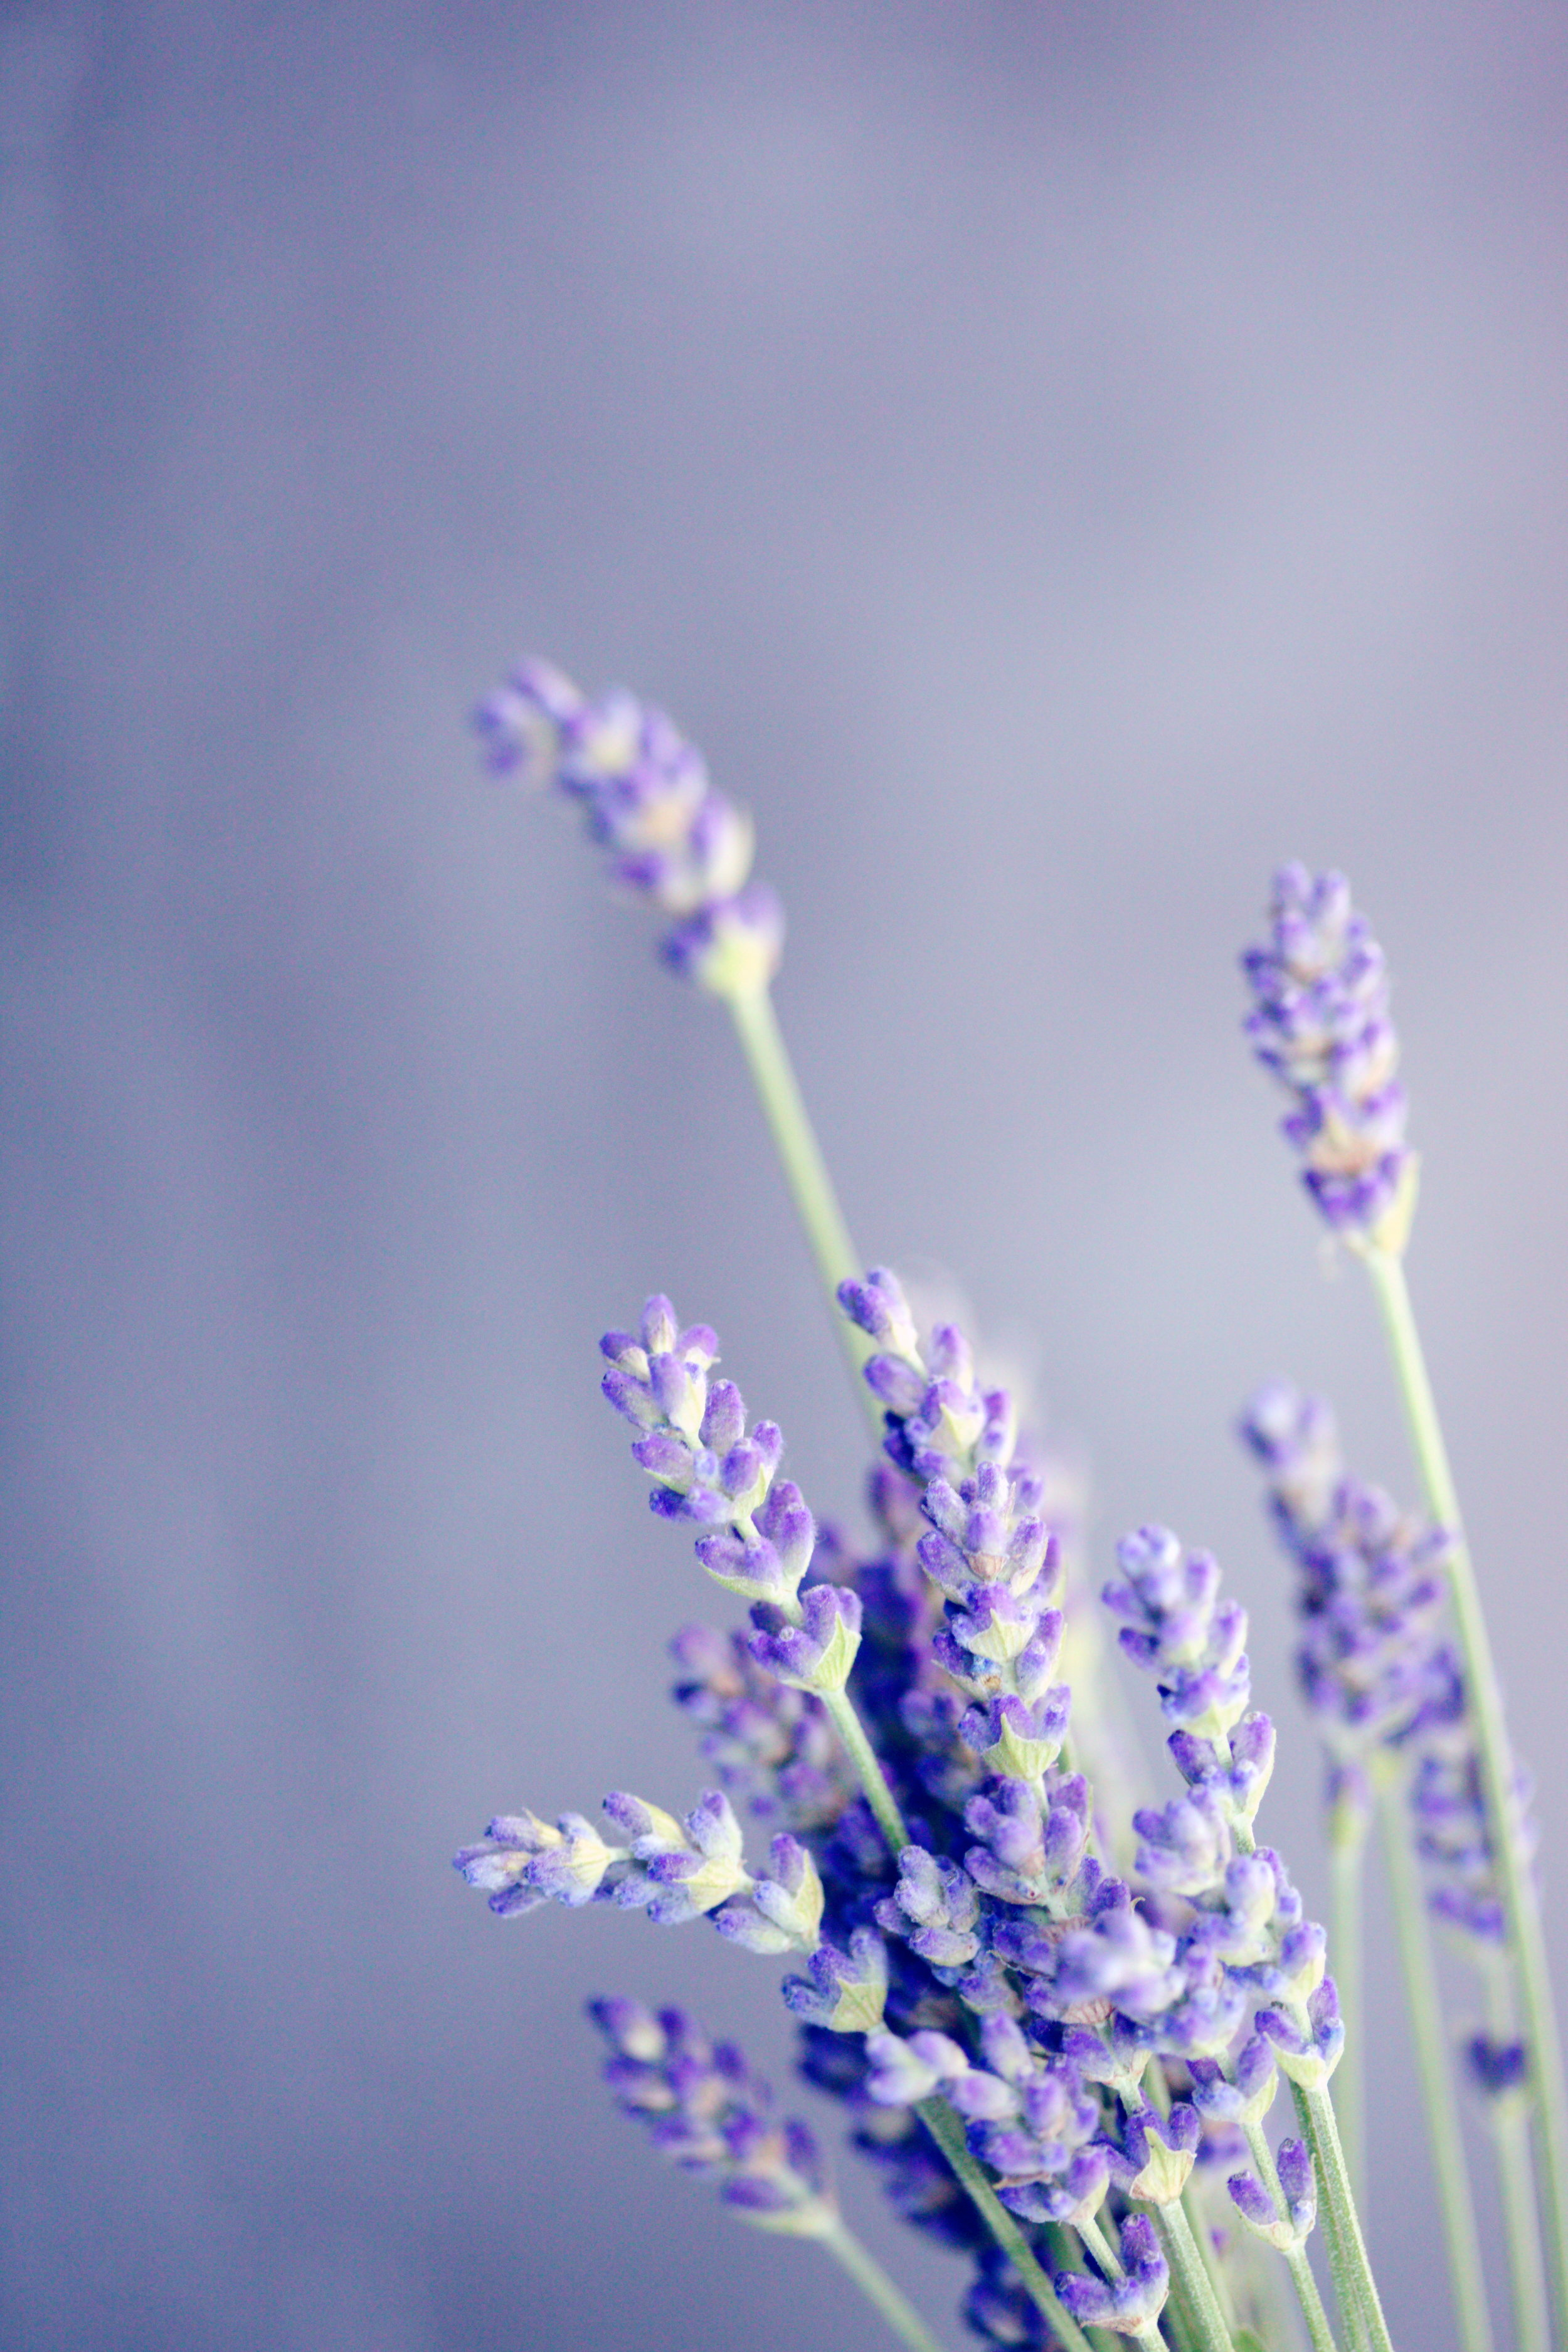 We chose: - ~ organic lavender essential oil for its soothing, healing properties, its ability to balance sebum production and repair damaged skin. The fresh scent has a relaxing and calming effect.~ calendula oil for its regenerative and ant-inflammatory properties. It helps to soften and soothe dry, chapped skin~ chamomile floral water for its calming effect, helping to ease inflamed skin and it has a sweet, warm aroma.~ organic apricot kernel oil because of its high content of oleic and linoleic acid, the phytosterols offering ant-inflammatory and barrier repair support, offering a velvety texture and clarity to the skin.~ organic sunflower oil for its ability to draw out dirt and impurities from the skin. Rich in vitamin E, omega 3 and 6 and beta-carotene, helps to neutralize free radicals which can damage the skin and lead to premature aging.~ aloe vera for is soothing and calming.~ vitamin E for its ability to neutralize free radicals.